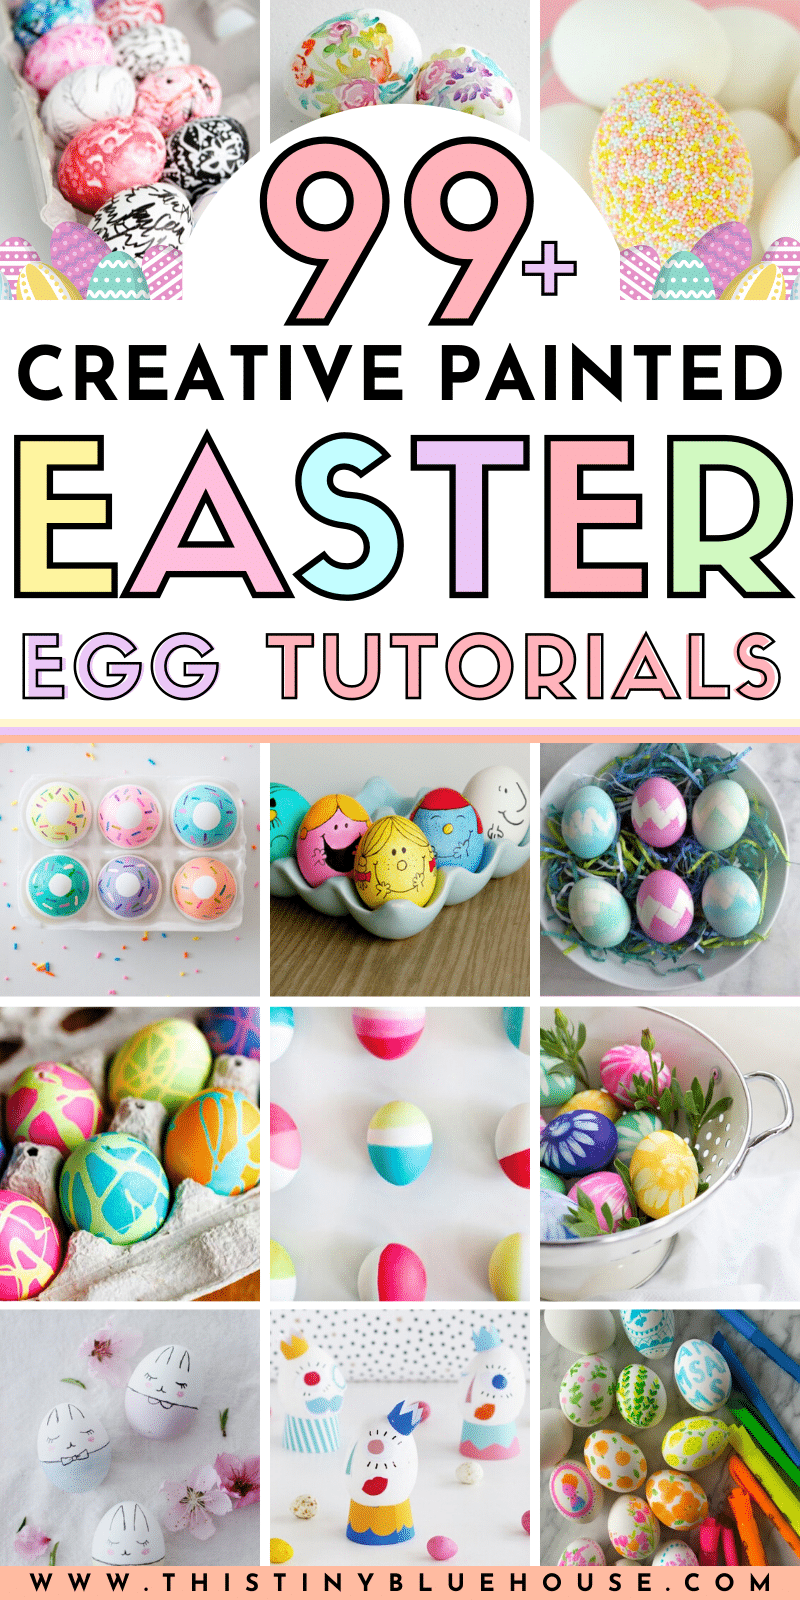 Make gorgeous painted Easter eggs this Easter with these 99+ Creative Painted Easter Egg tutorials. #eastereggs #paintedeastereggs #eastereggtutorials #paintedeastereggtutorials #easypaintedeastereggs